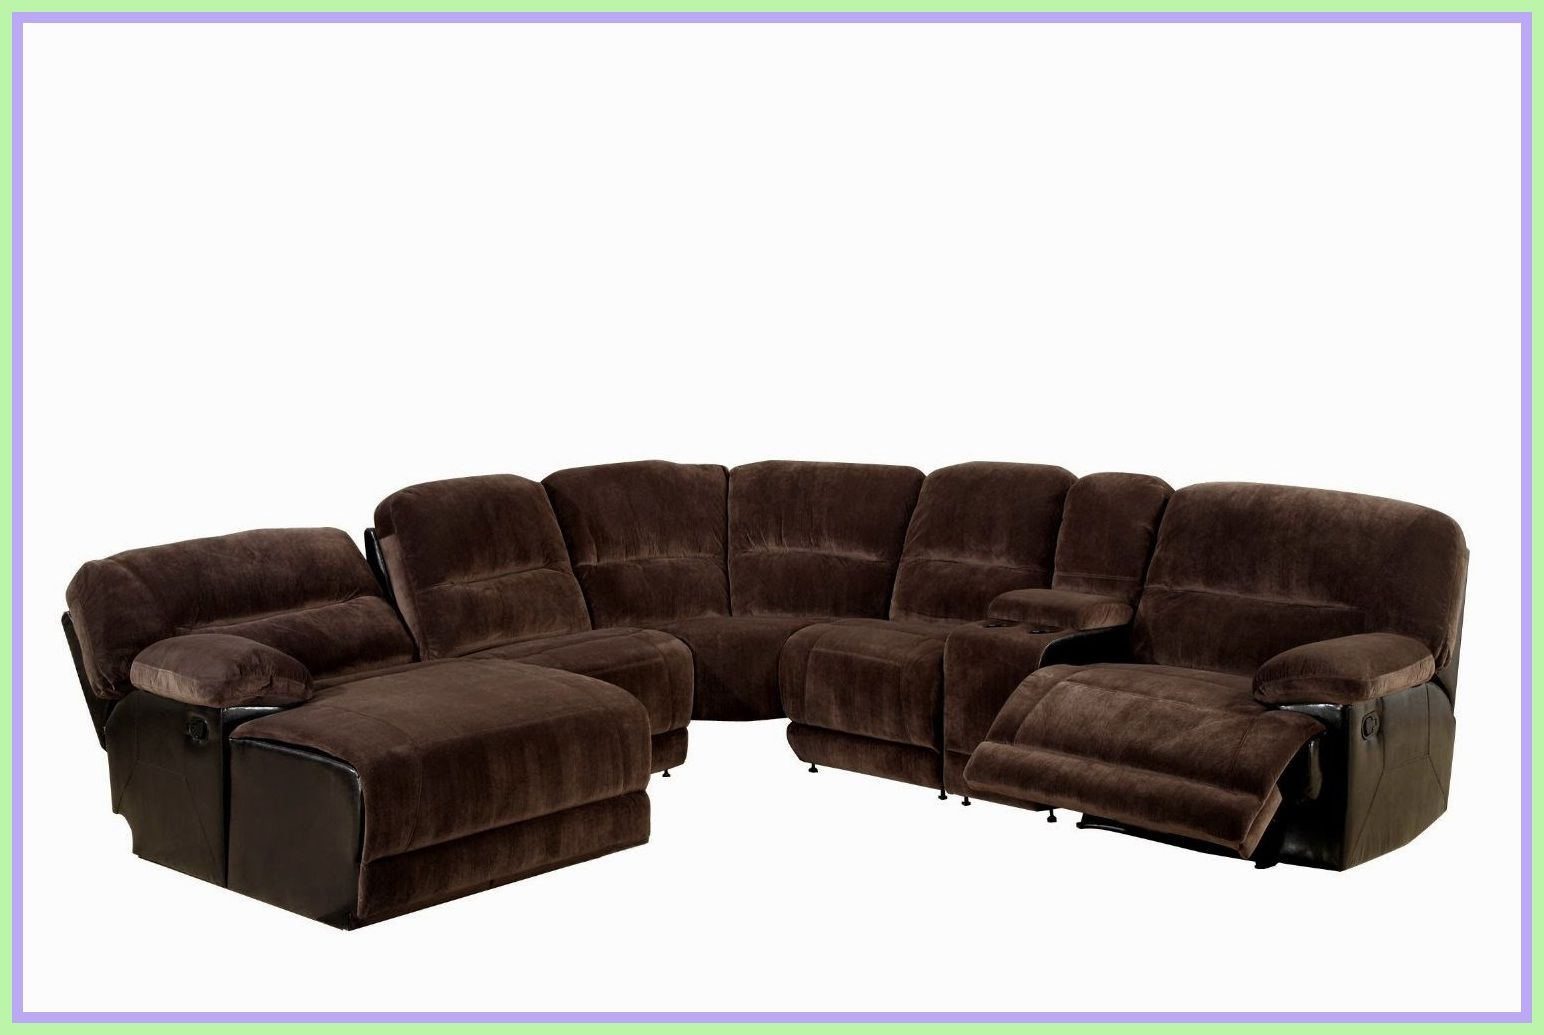 Pin On Sofa Sectional Leather White